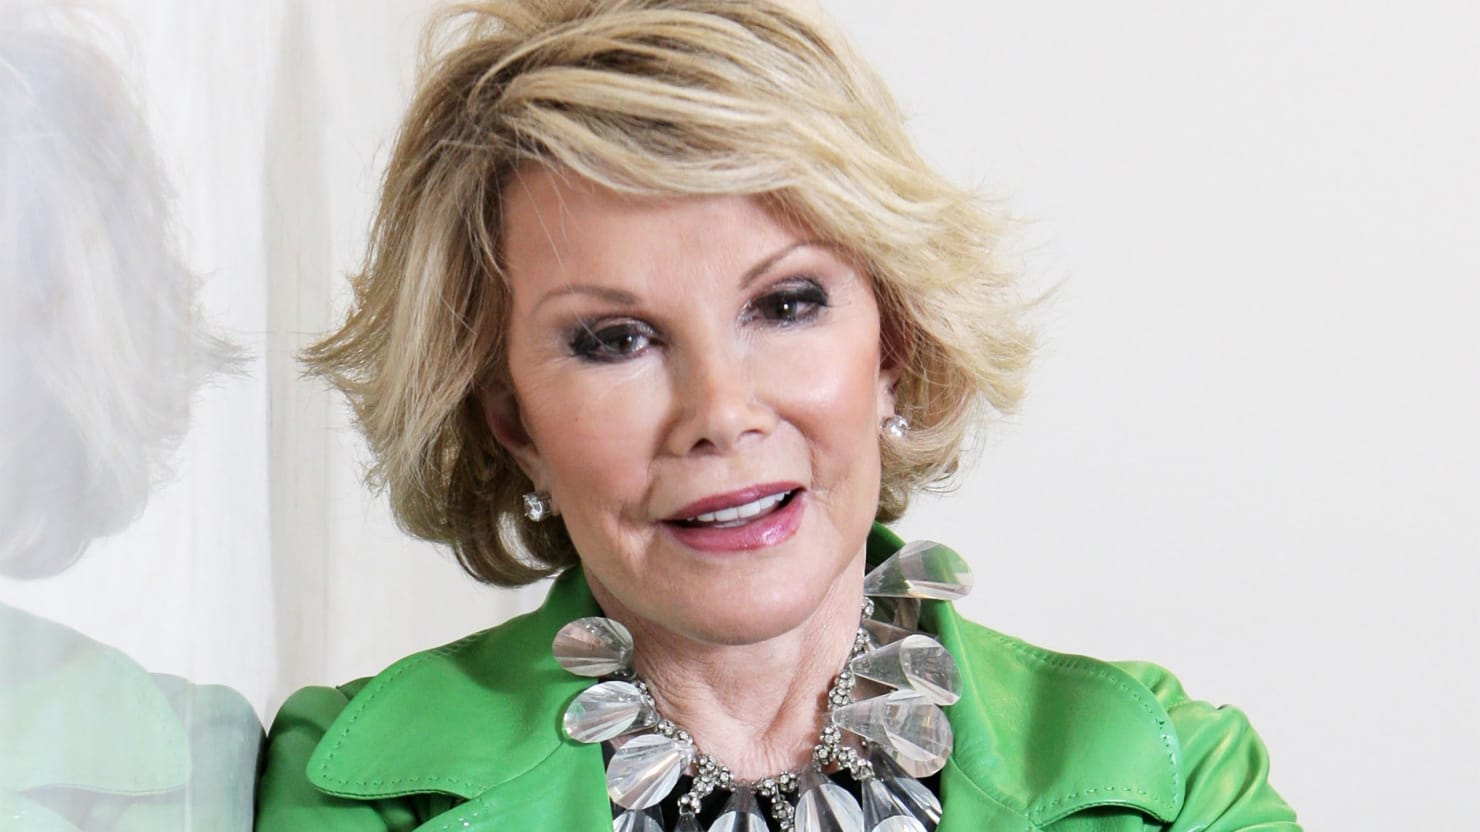 You Can Own A Piece Of Joan Rivers The Story Of Her Math Wallpaper Golden Find Free HD for Desktop [pastnedes.tk]